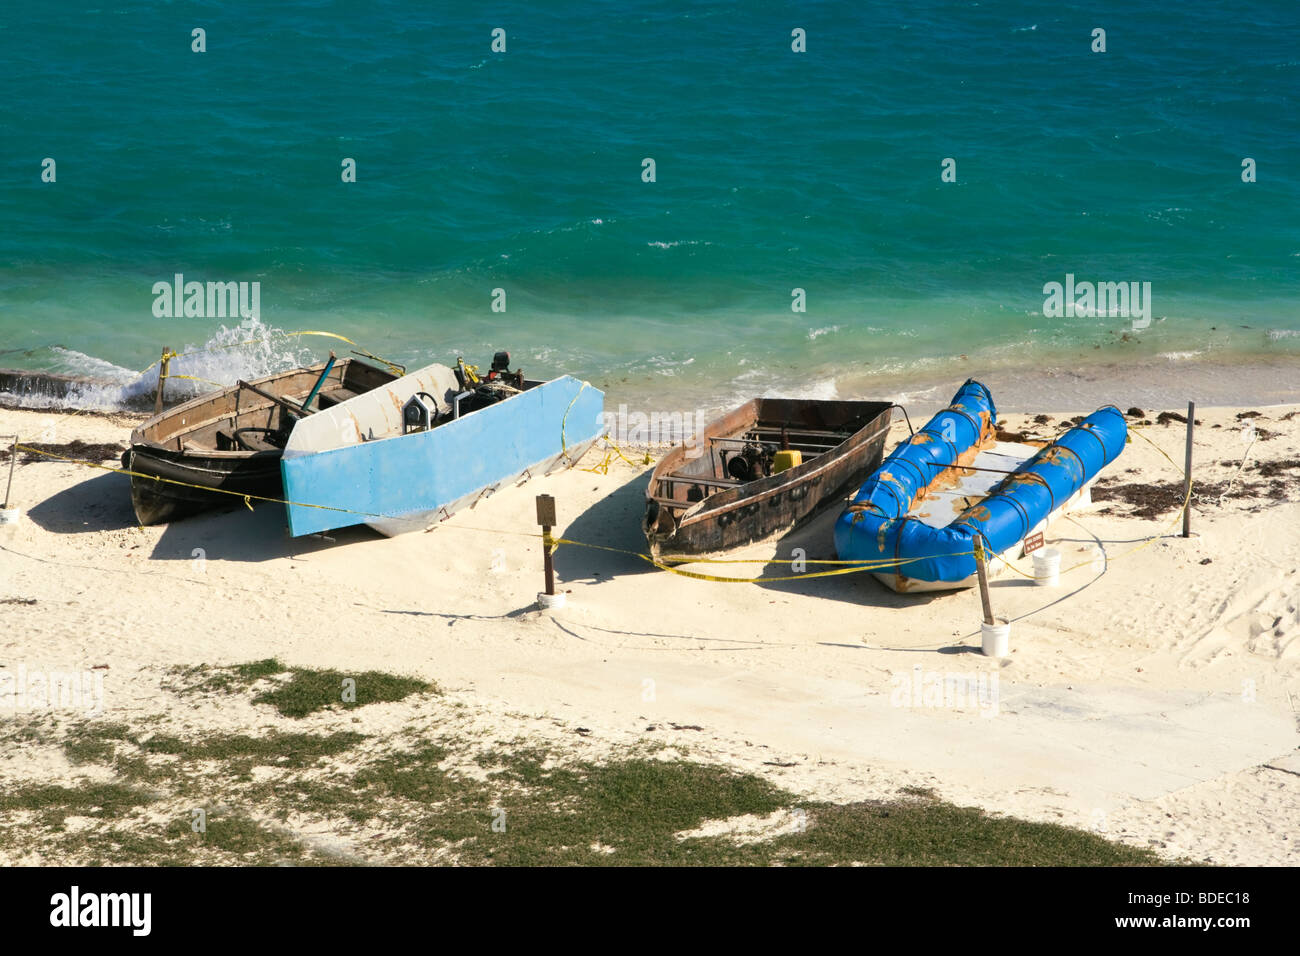 Boats of Cuban Immigrants - Stock Image